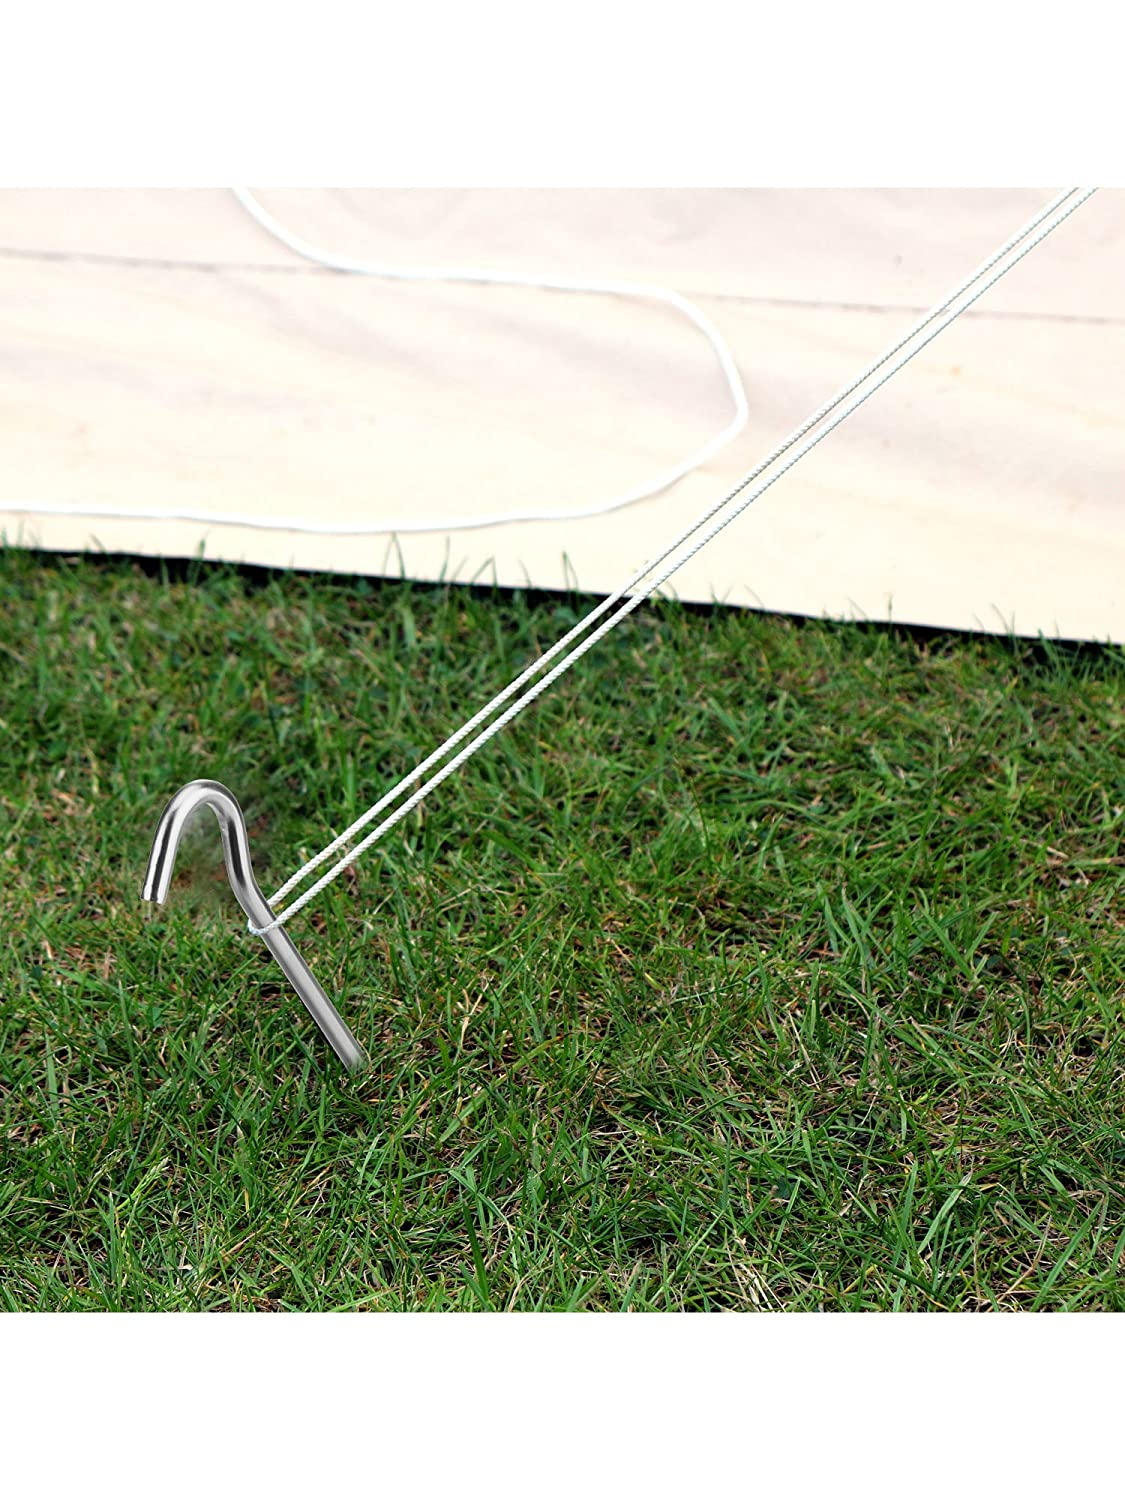 Hiking 18 cm x 6 mm 12 Pack Tent Pegs Aluminium Alloy Tent Stakes with Drawstring Bag for Outdoor Camping Trip